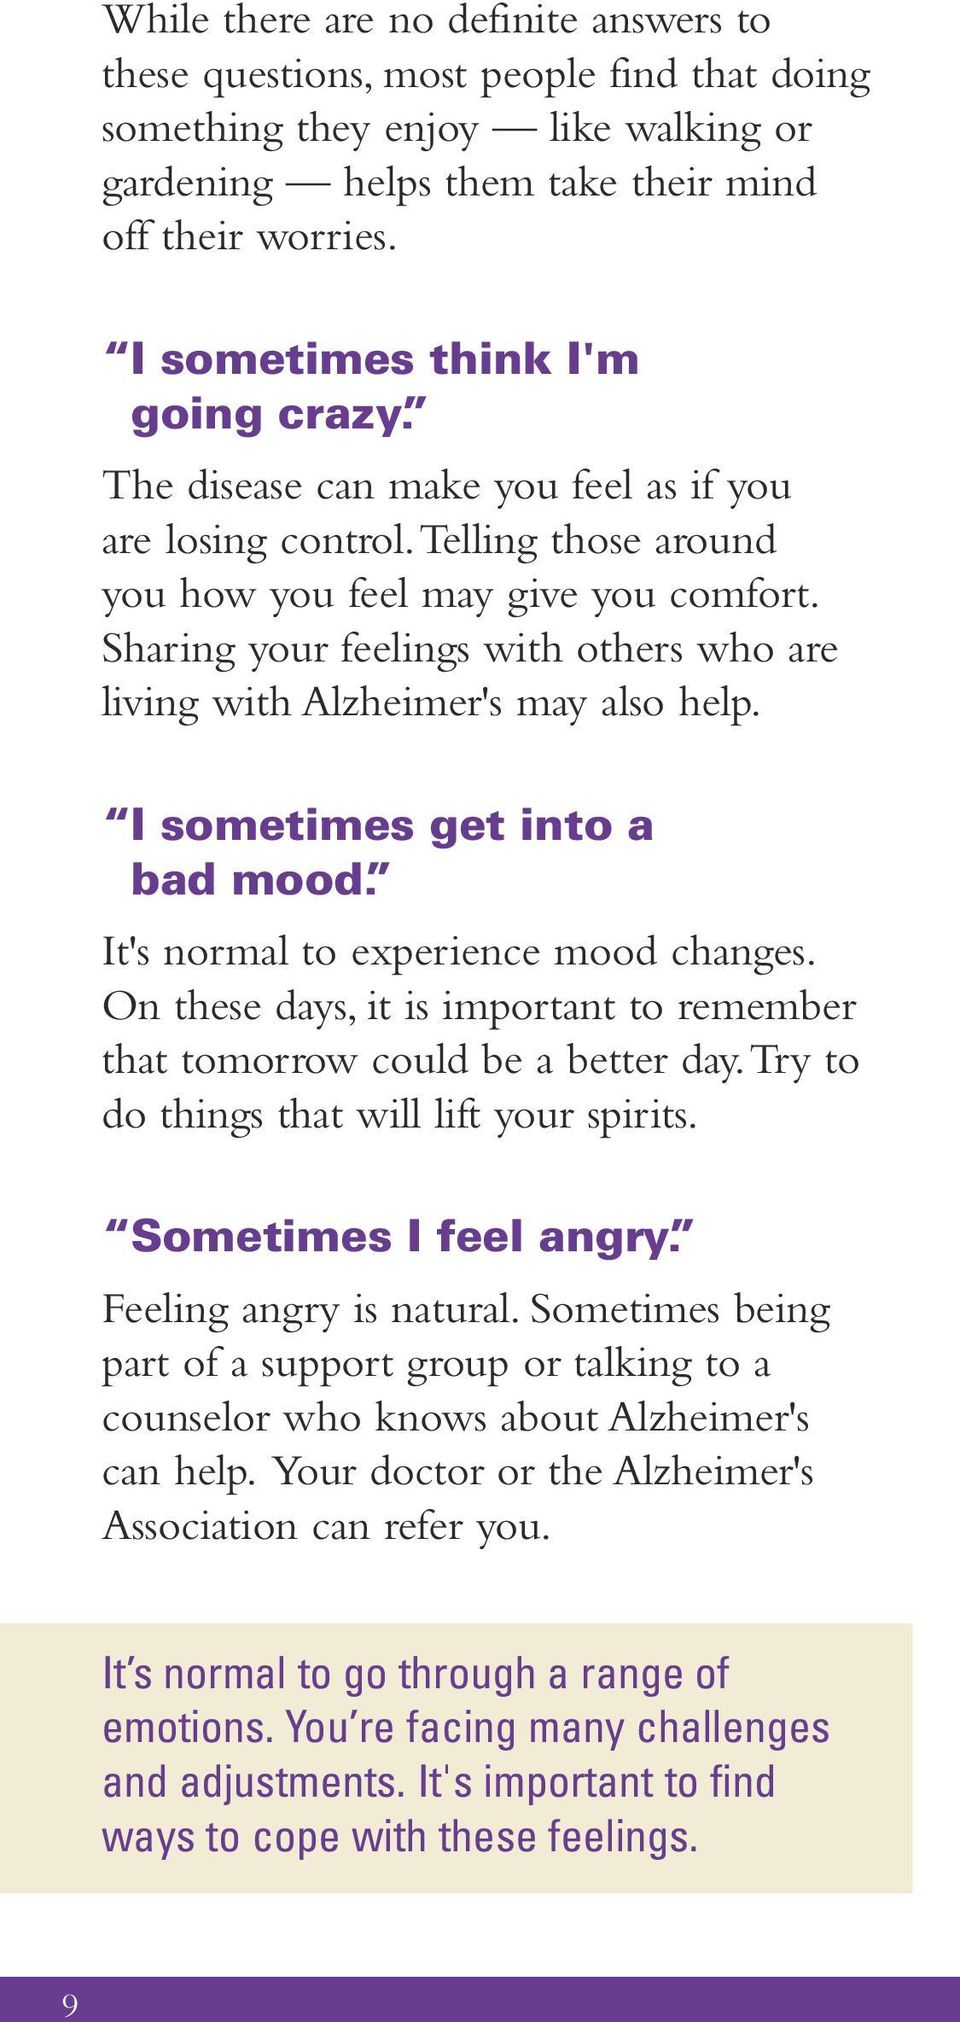 Sharing your feelings with others who are living with Alzheimer's may also help. I sometimes get into a bad mood. It's normal to experience mood changes.